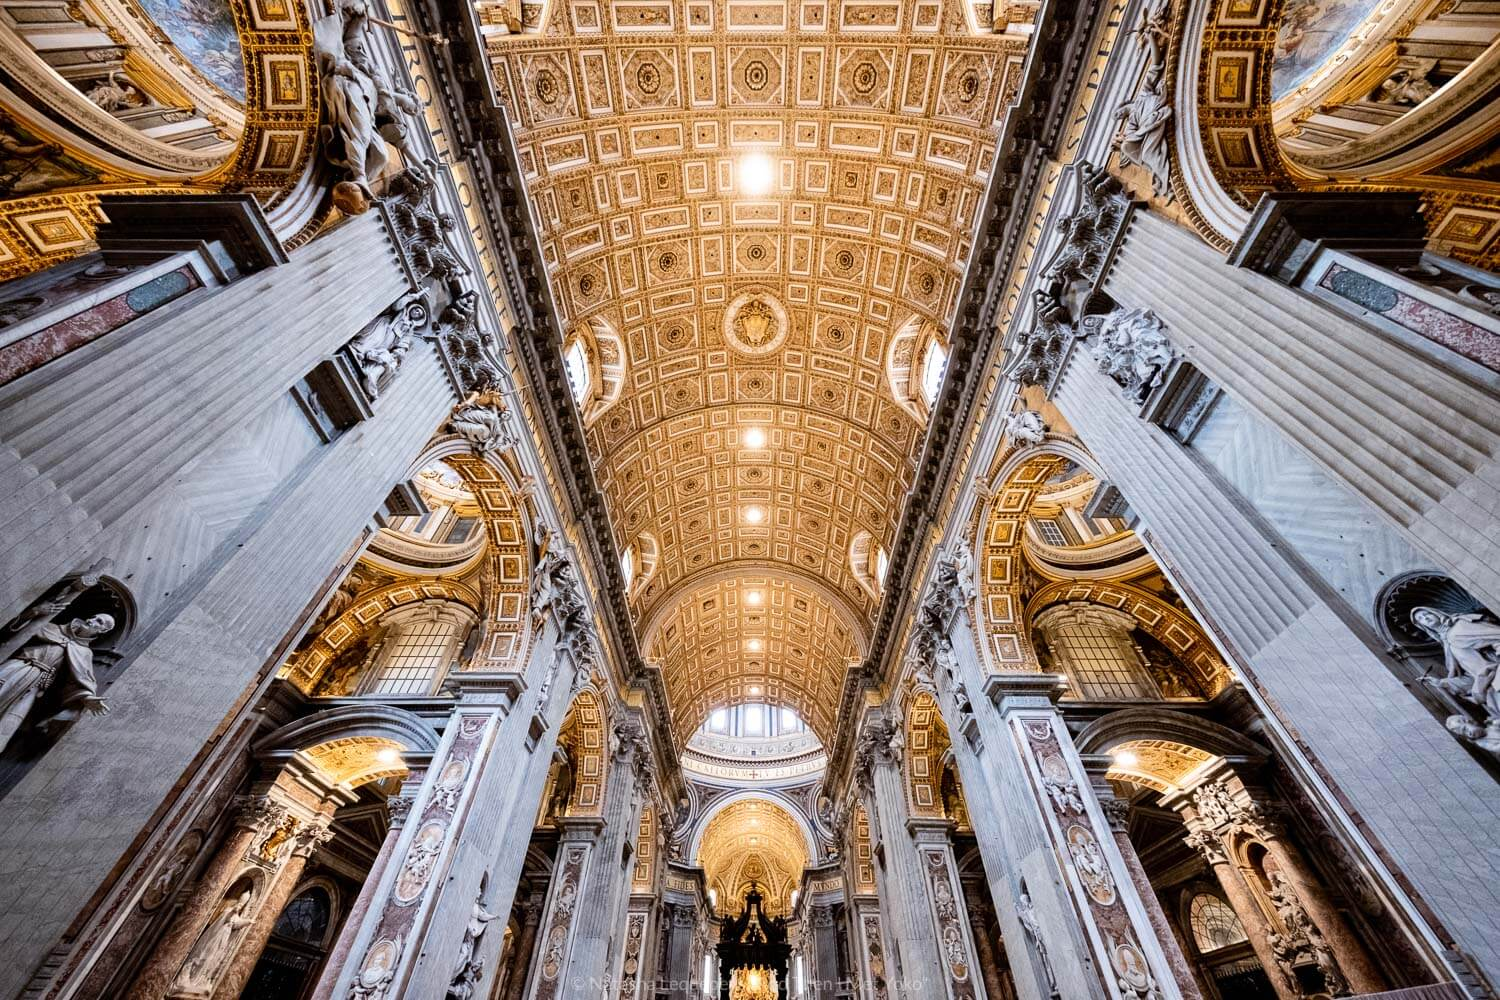 """The ceiling of Saint Peter's Basilica, Vatican. Travel photography and guide by © Natasha Lequepeys for """"And Then I Met Yoko"""". #rome #italy #travelblog #travelphotography"""